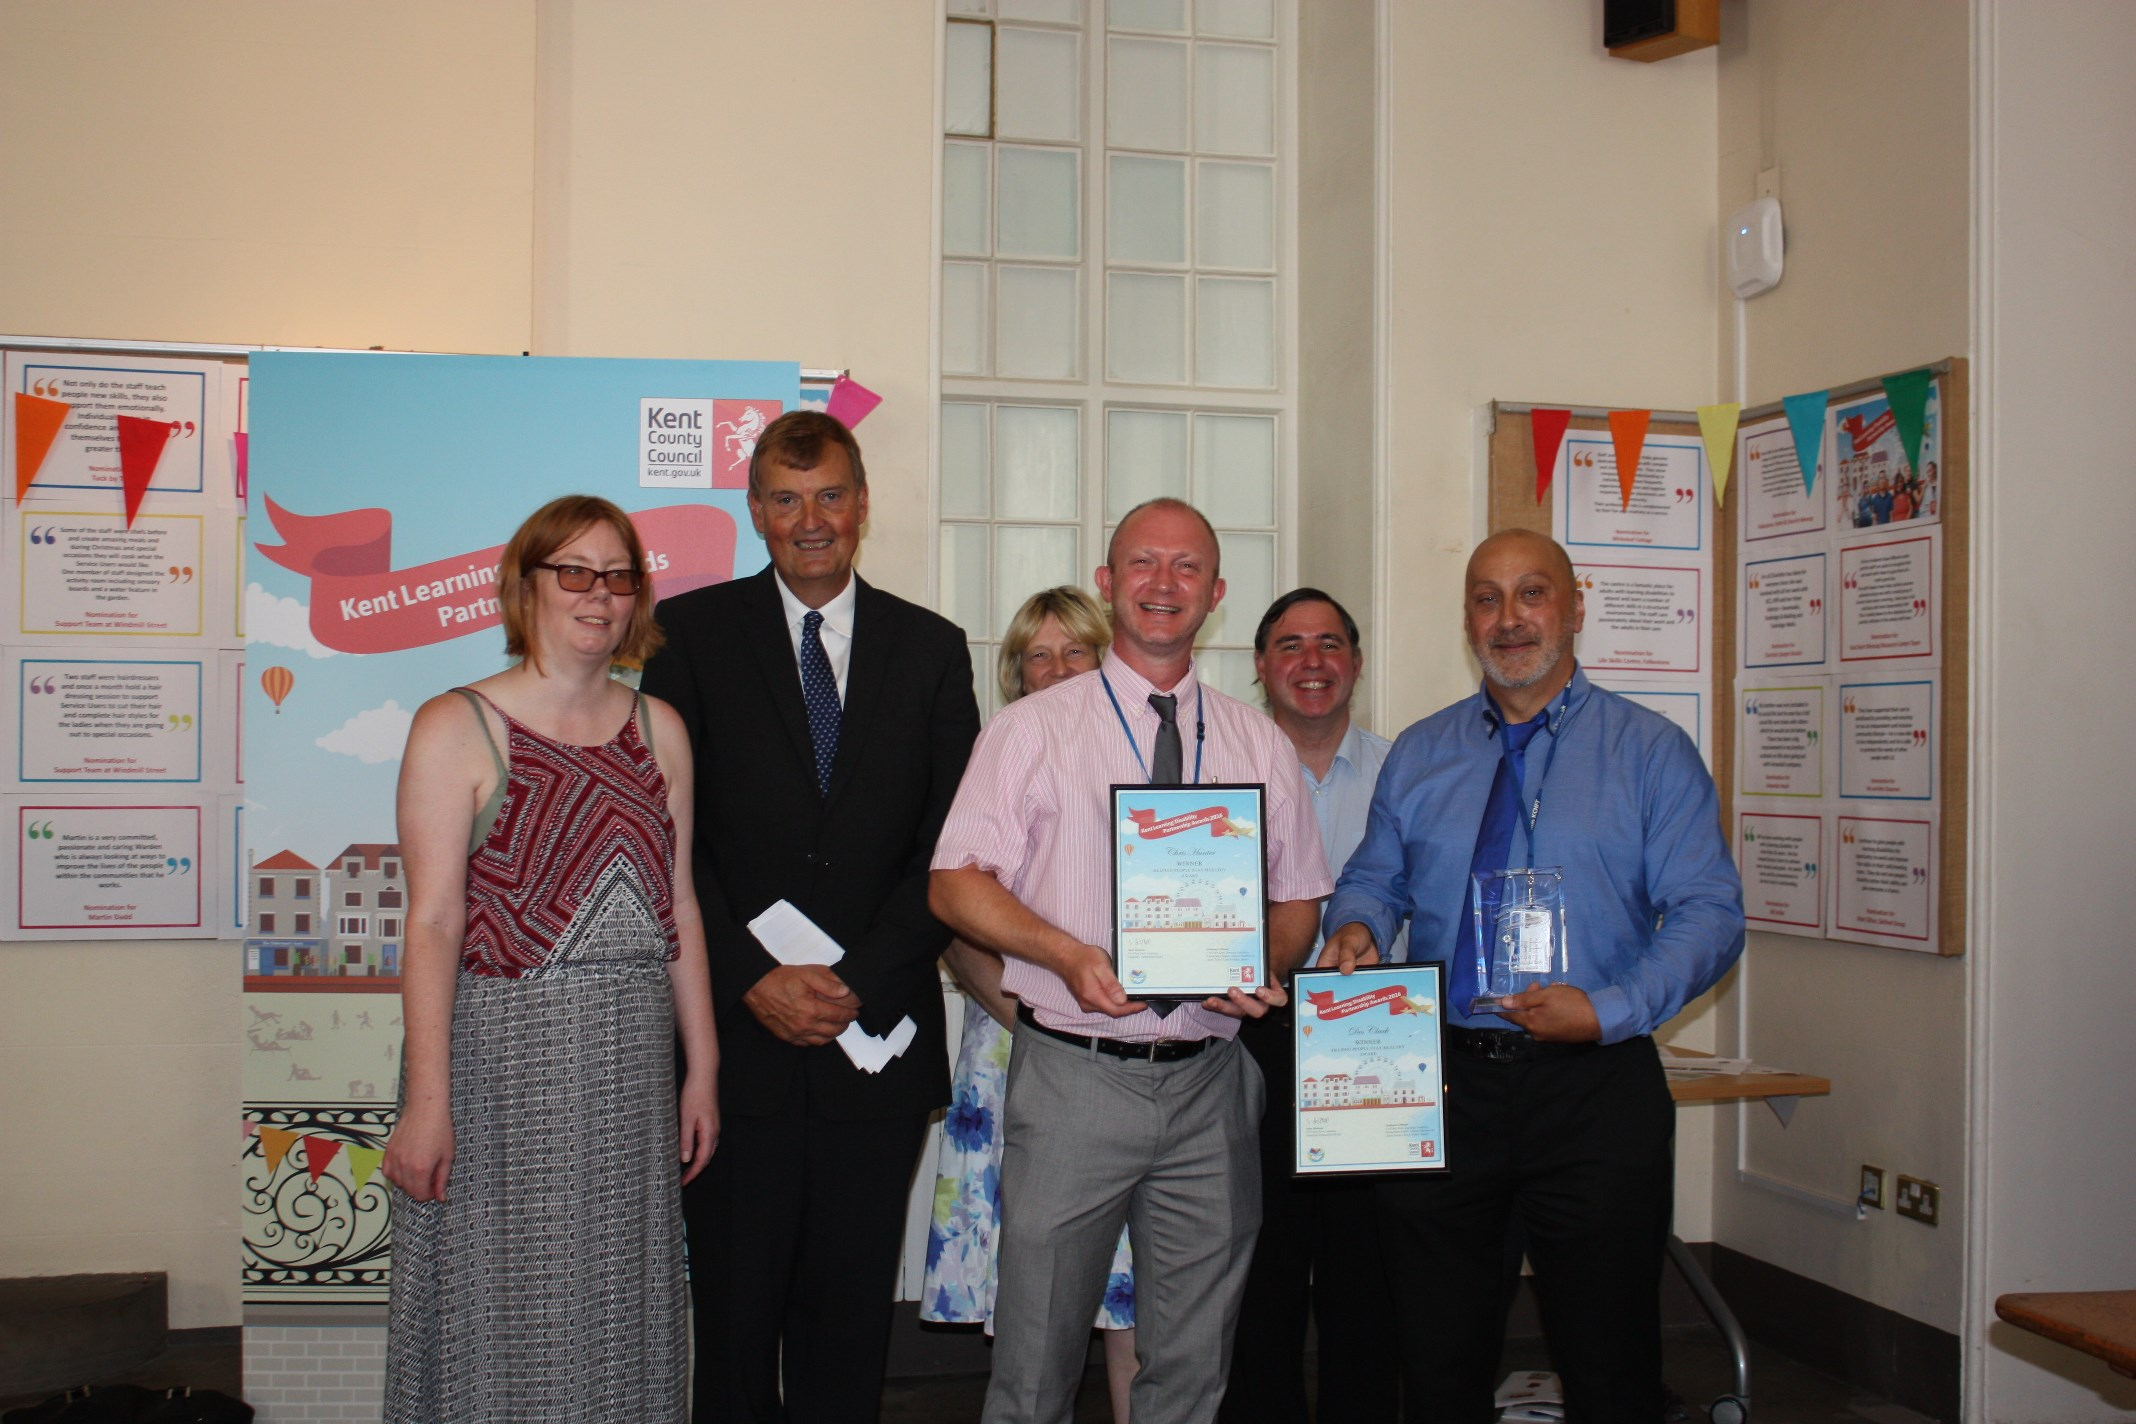 Winners of Kent Learning Disability Partnership Awards announced